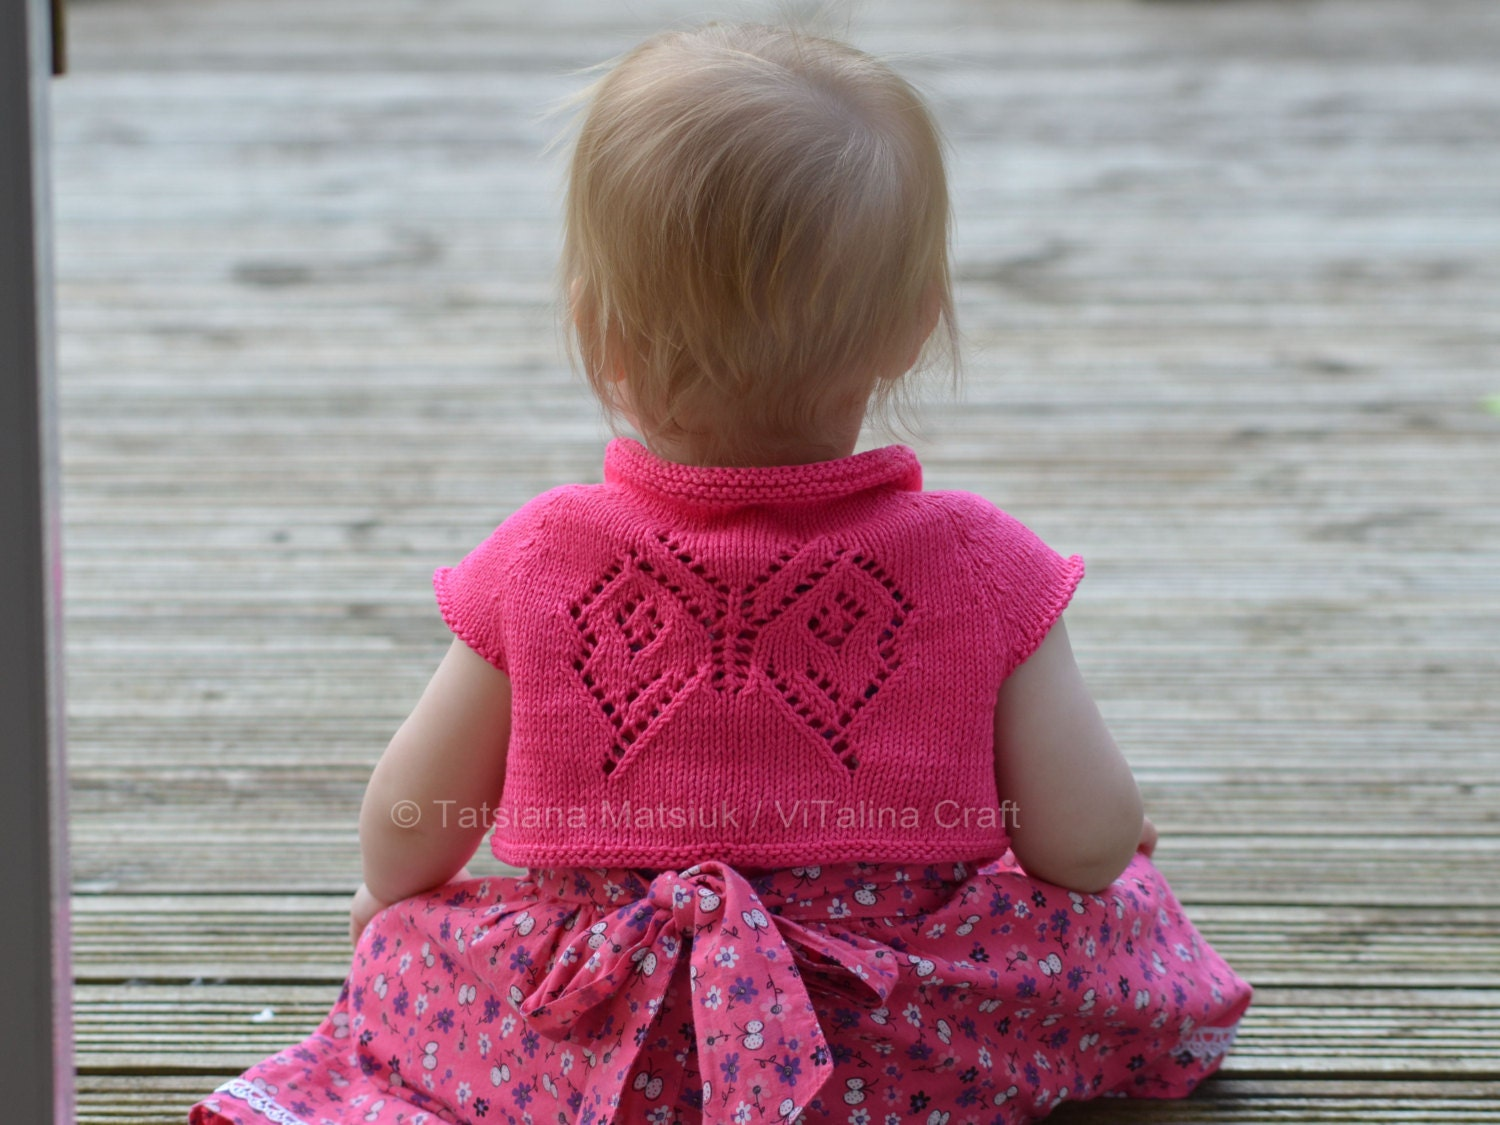 Knitting Pattern Baby Bolero Cardigan : Knitting Pattern Papillon Bolero Cardigan Baby Child